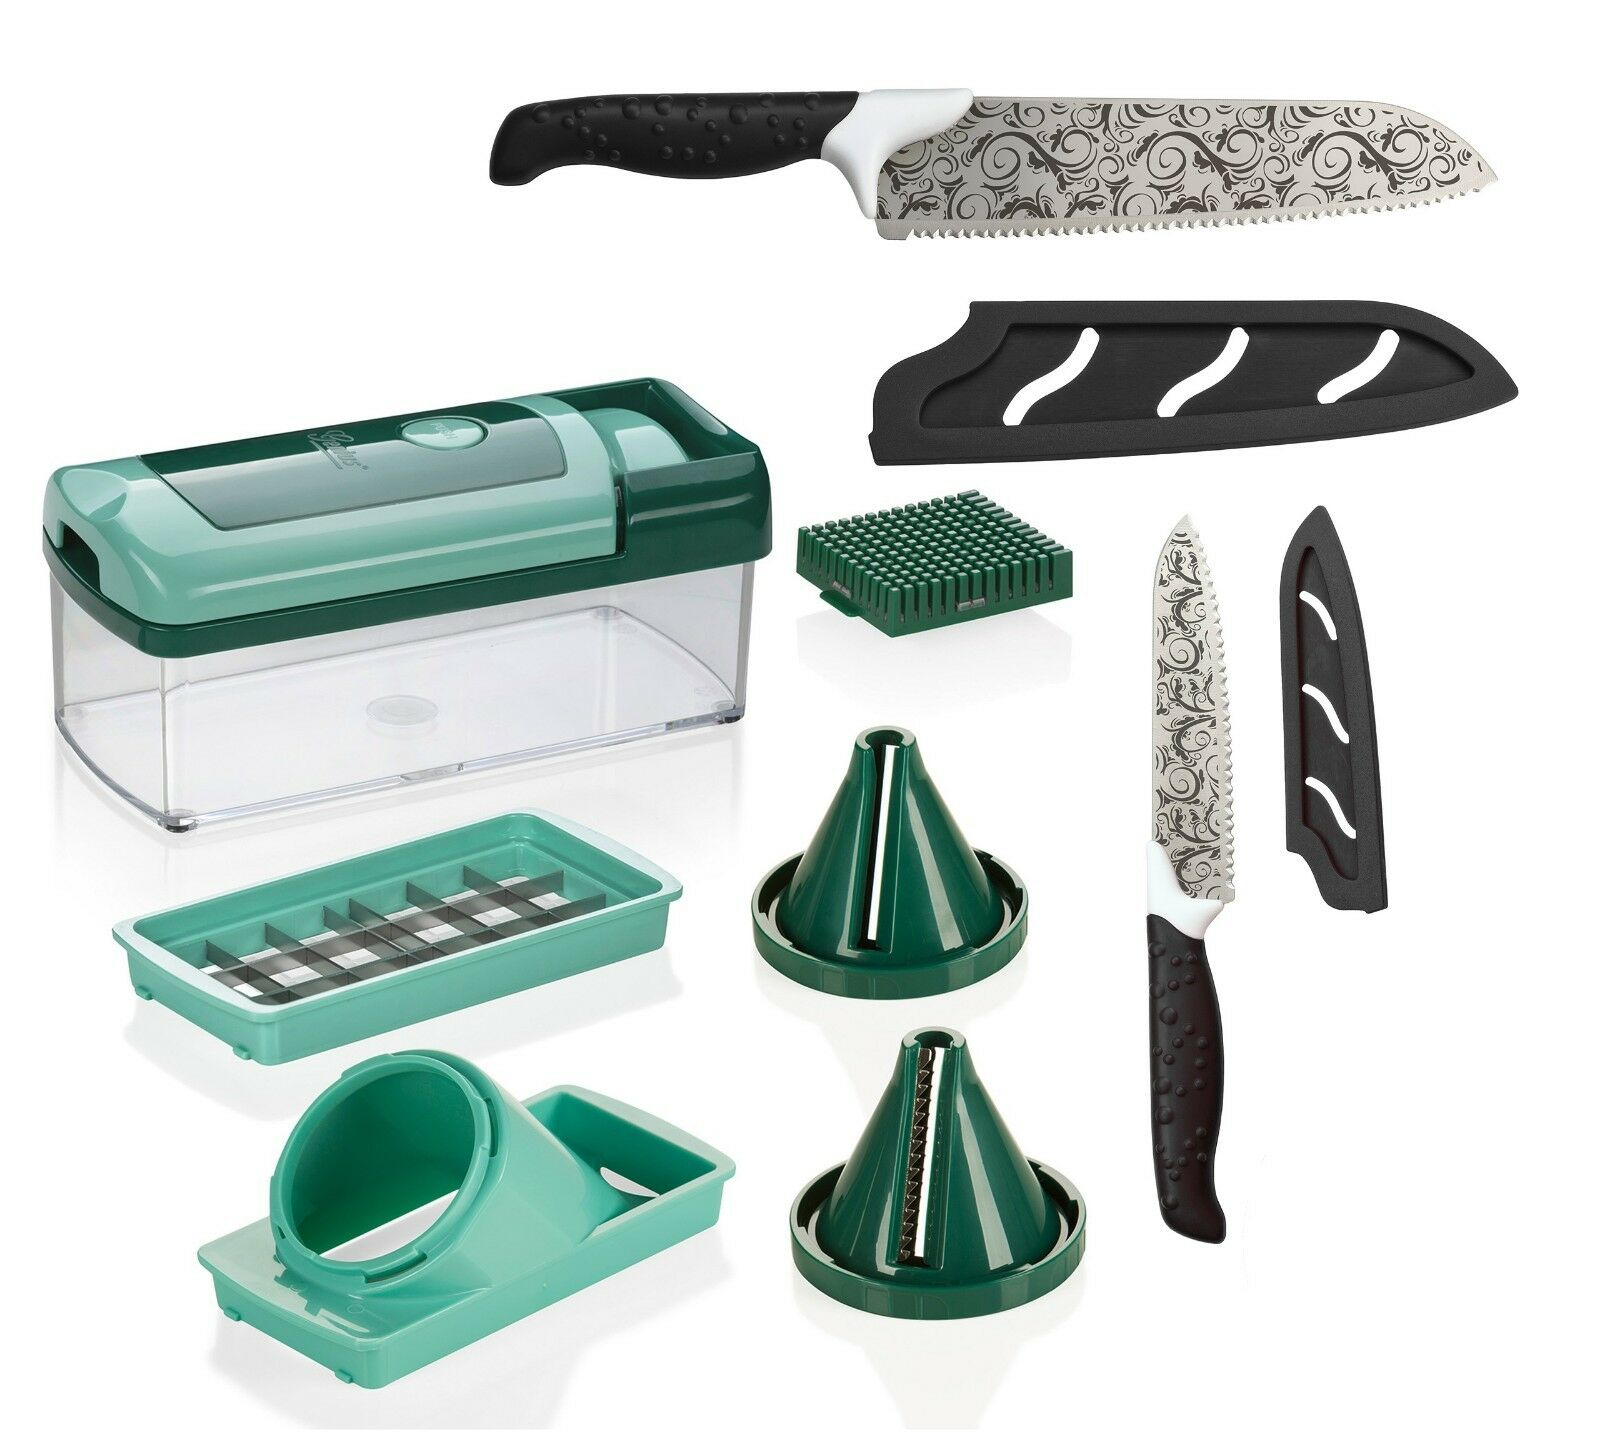 Genius Magic Cut   10 Teile   inkl. GRATIS Nicer Dicer Fusion Smart   NEU